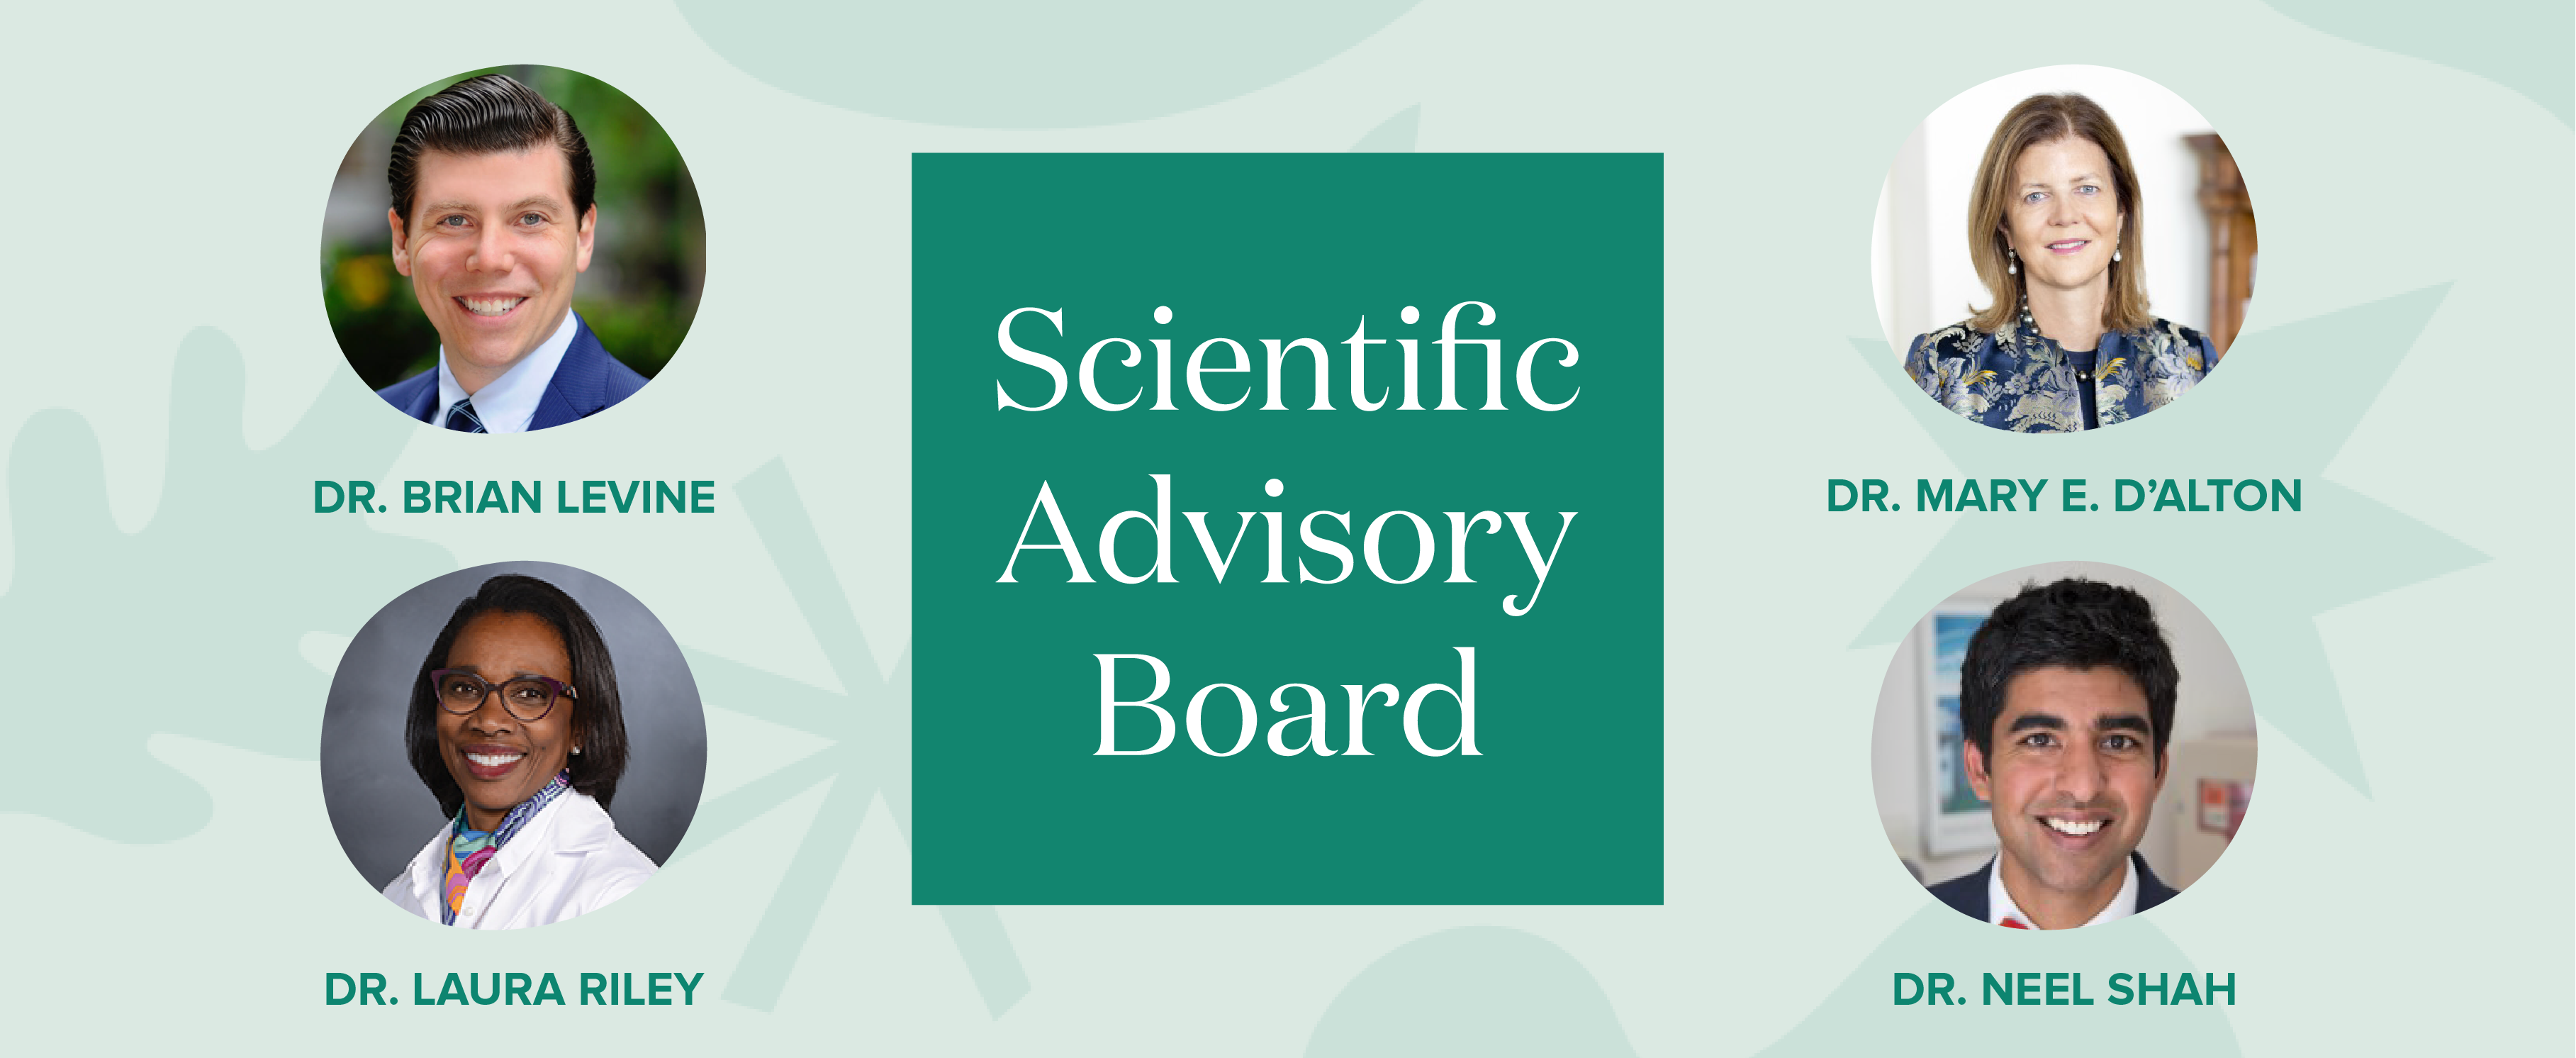 Meet Maven's Scientific Advisory Board